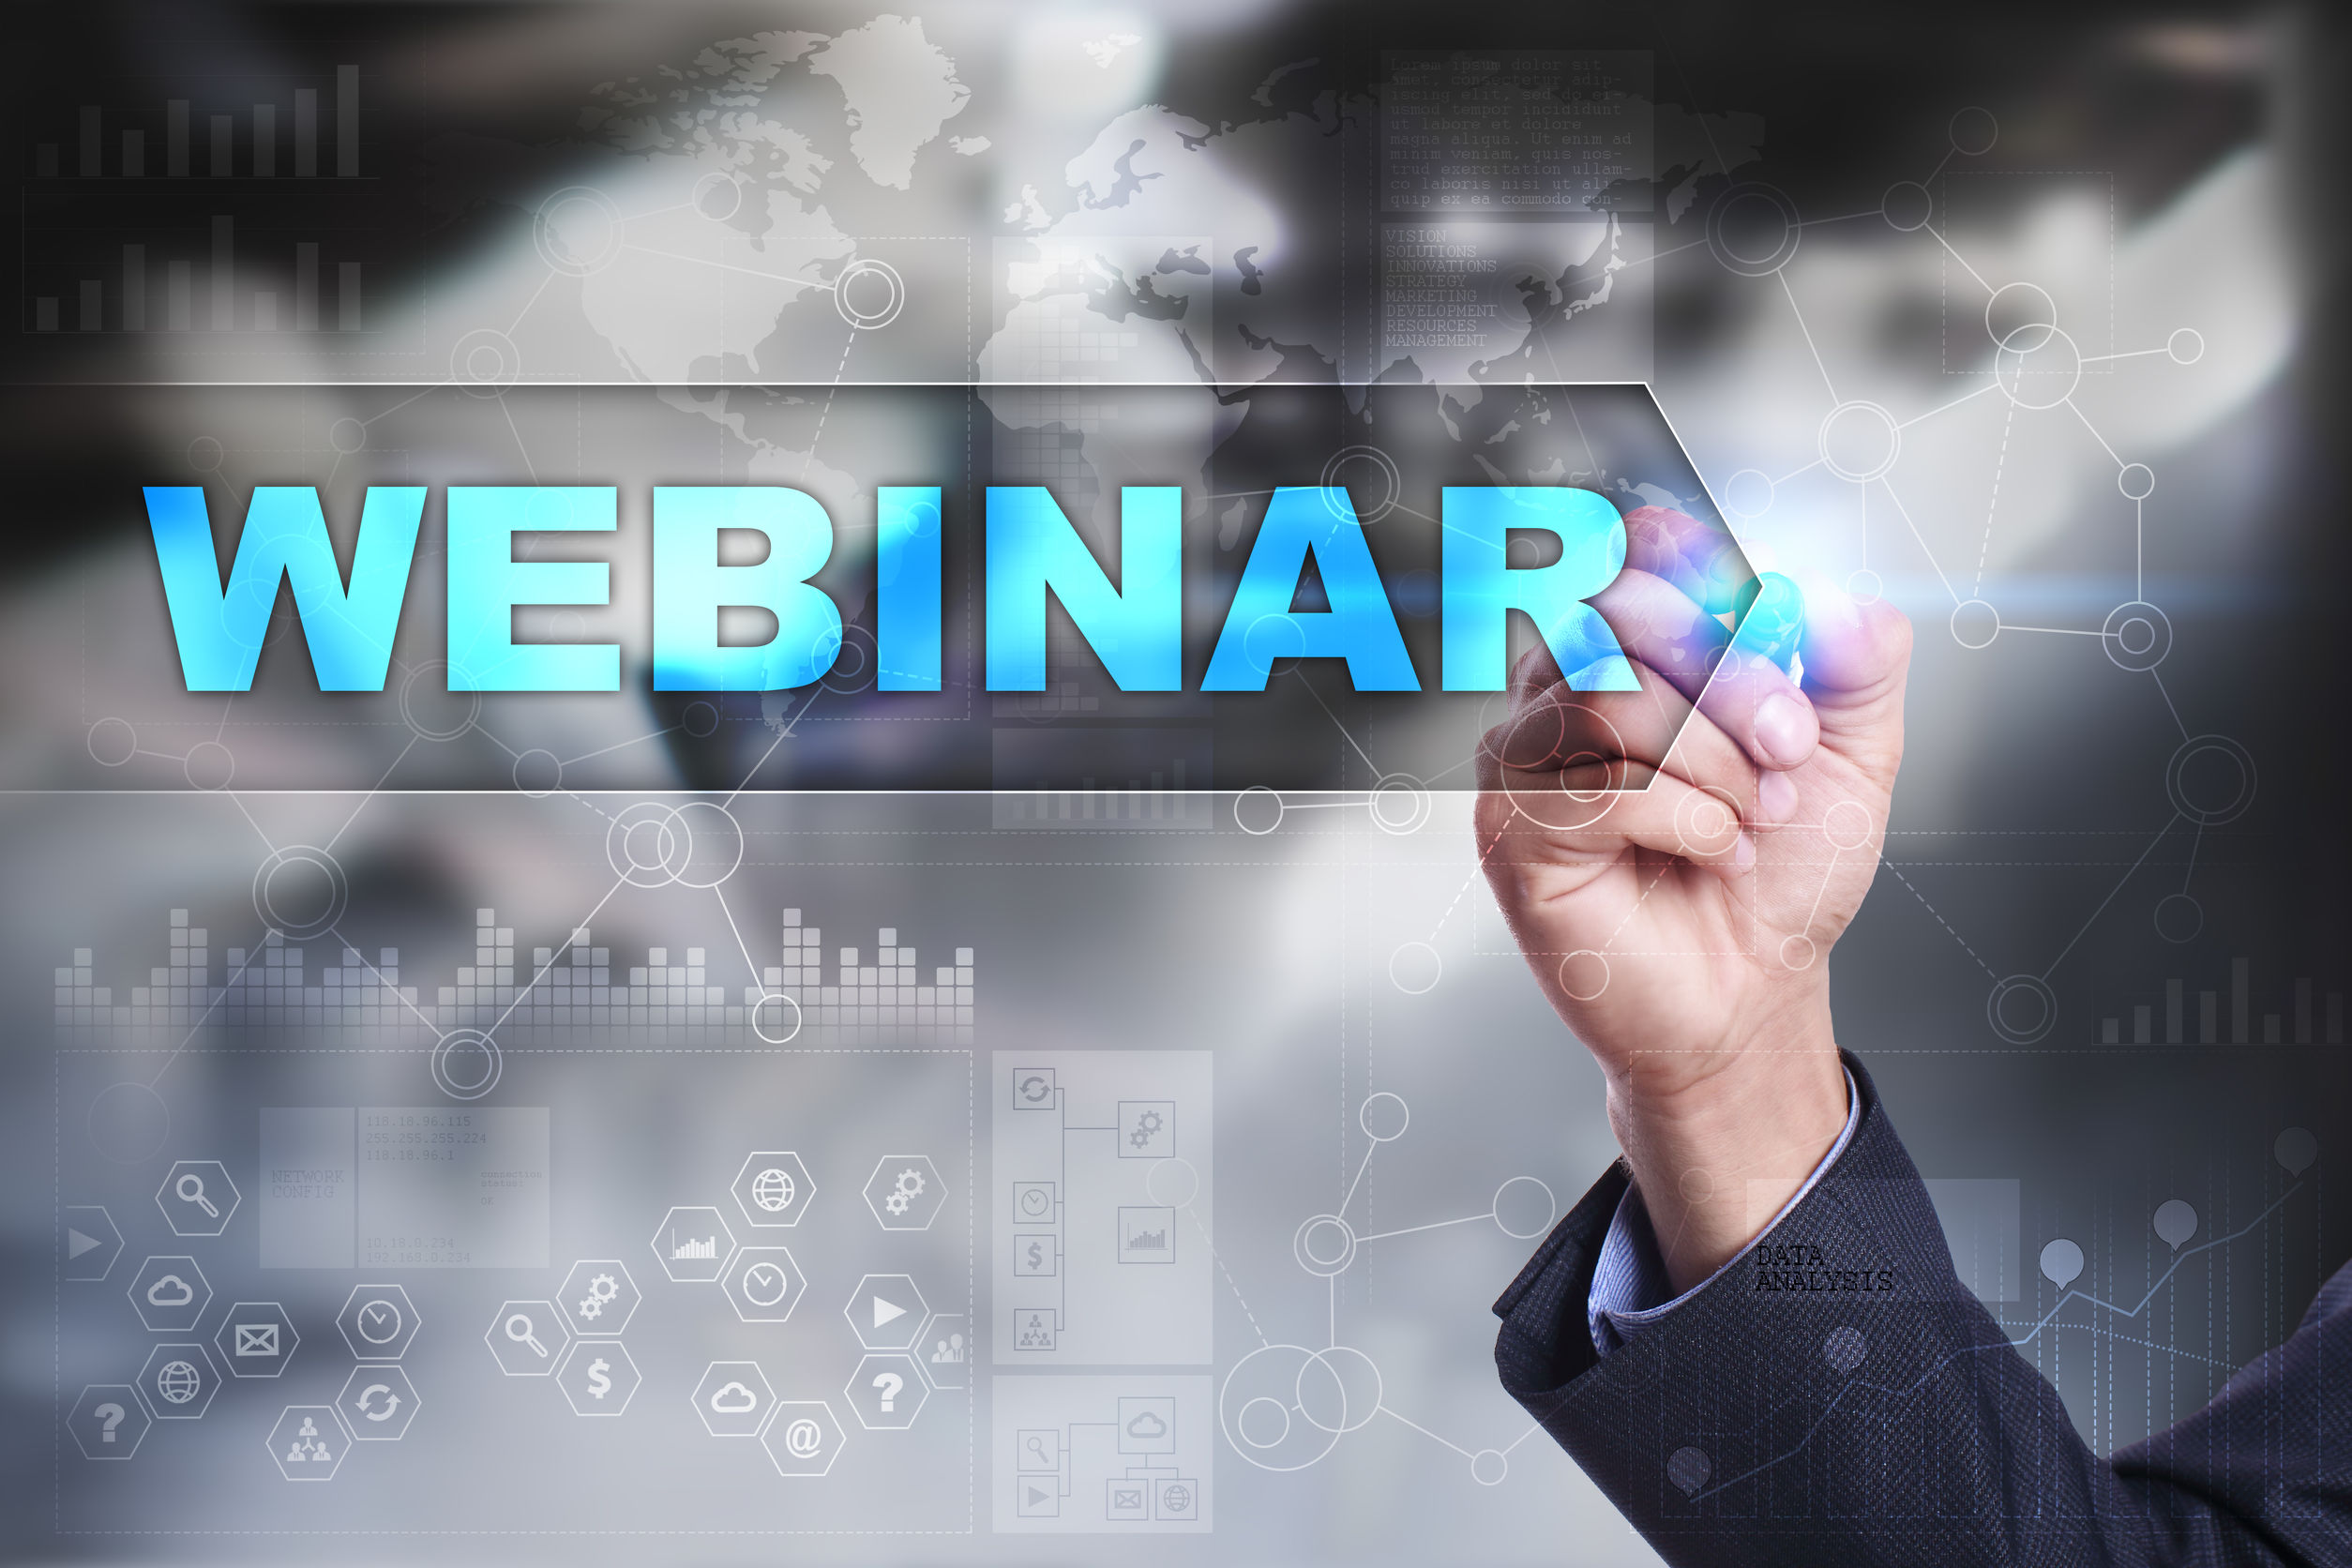 Help Your Business Spring Forward with Our April Webinars